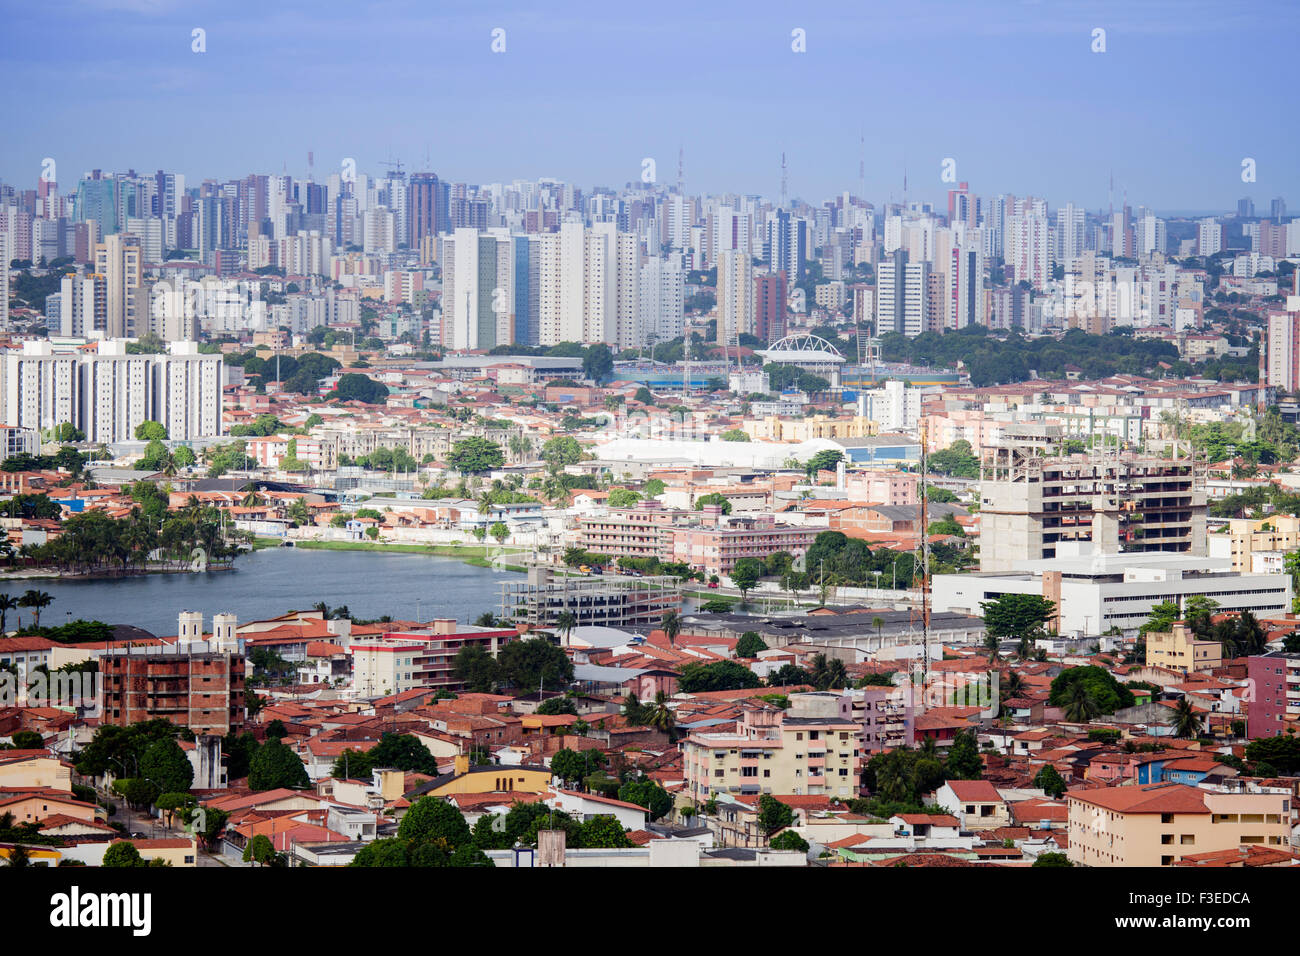 Skyline of Fortaleza city, Ceara state, Brazil. Fortaleza has one of the highest crime rates in Brazil - Stock Image